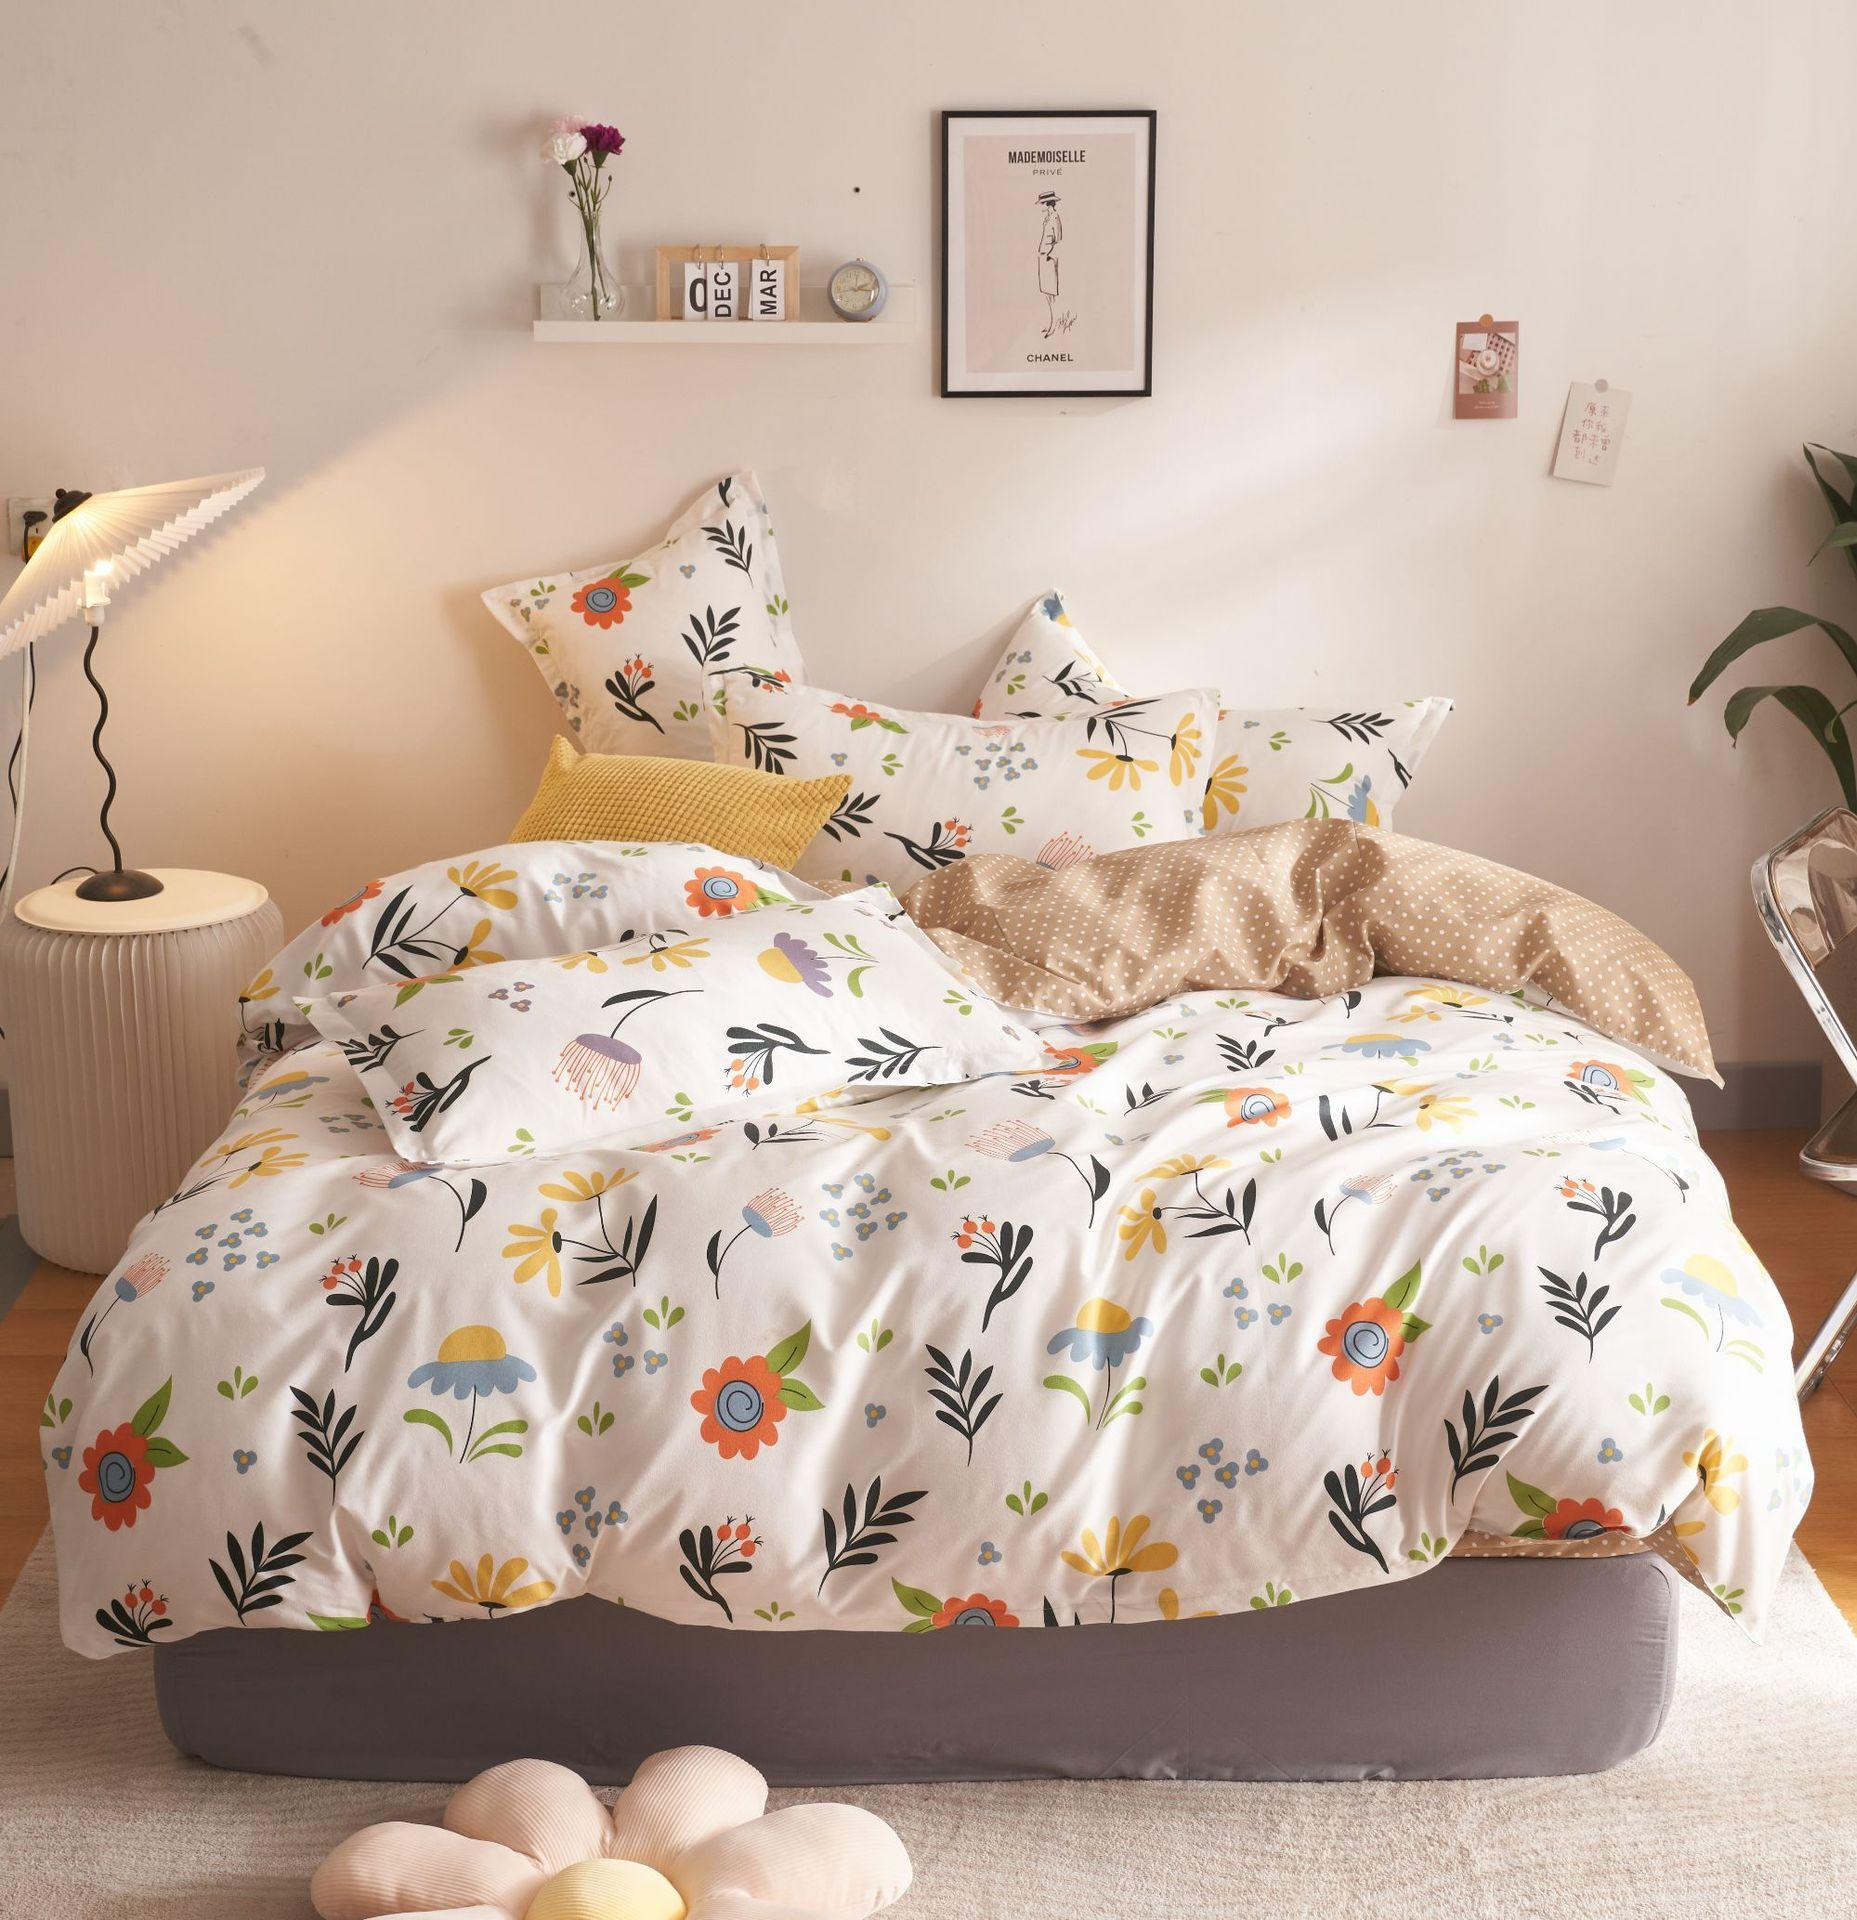 Student sheets are set with three-piece water wash cotton shredded flowers four-piece sets of bedding